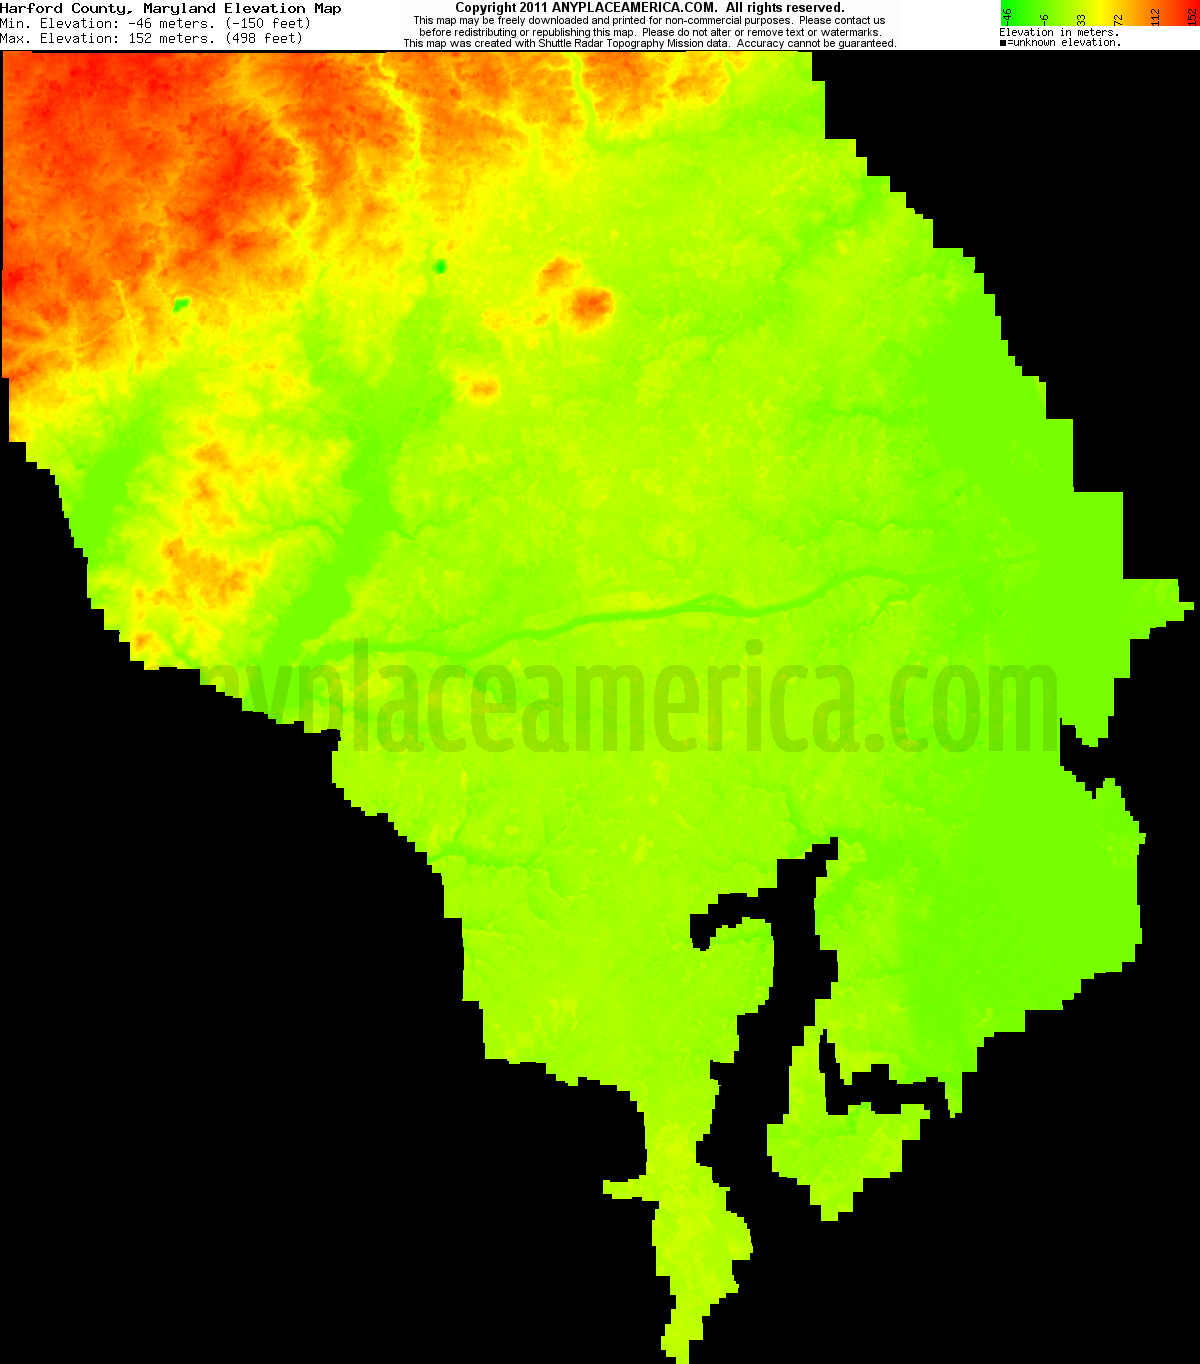 Free Harford County Maryland Topo Maps Elevations - Maryland us county map